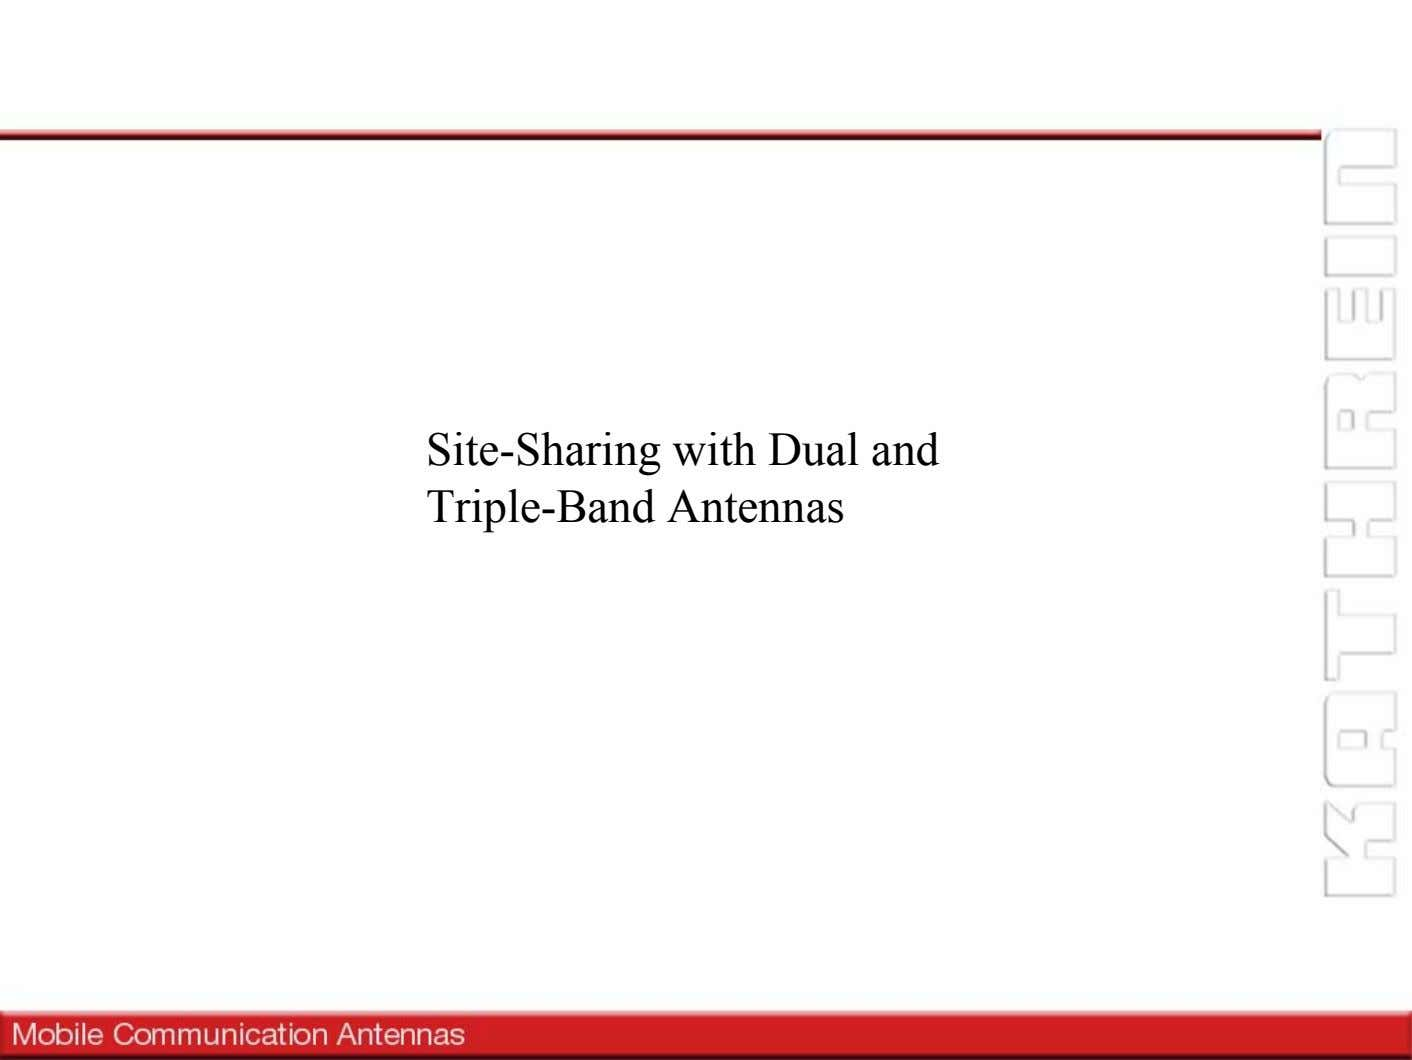 Site-Sharing with Dual and Triple-Band Antennas